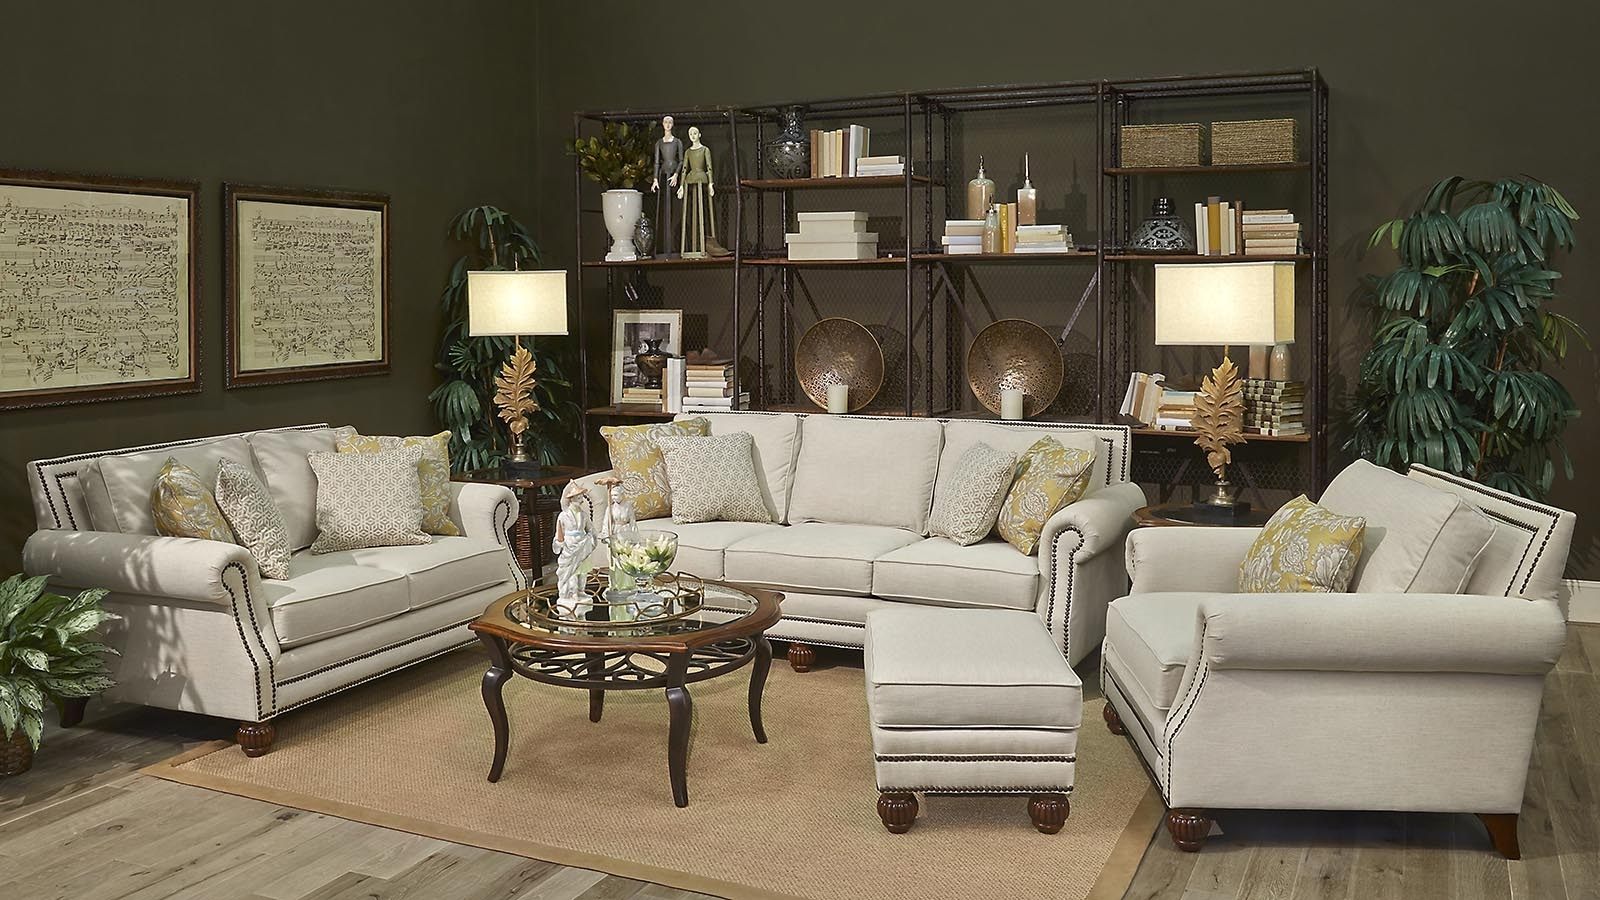 Most Recently Released Living Room Sofa And Chair Sets For Furniture: Good Living Room Sets On Sale Ethan Allen Living Room (View 16 of 20)